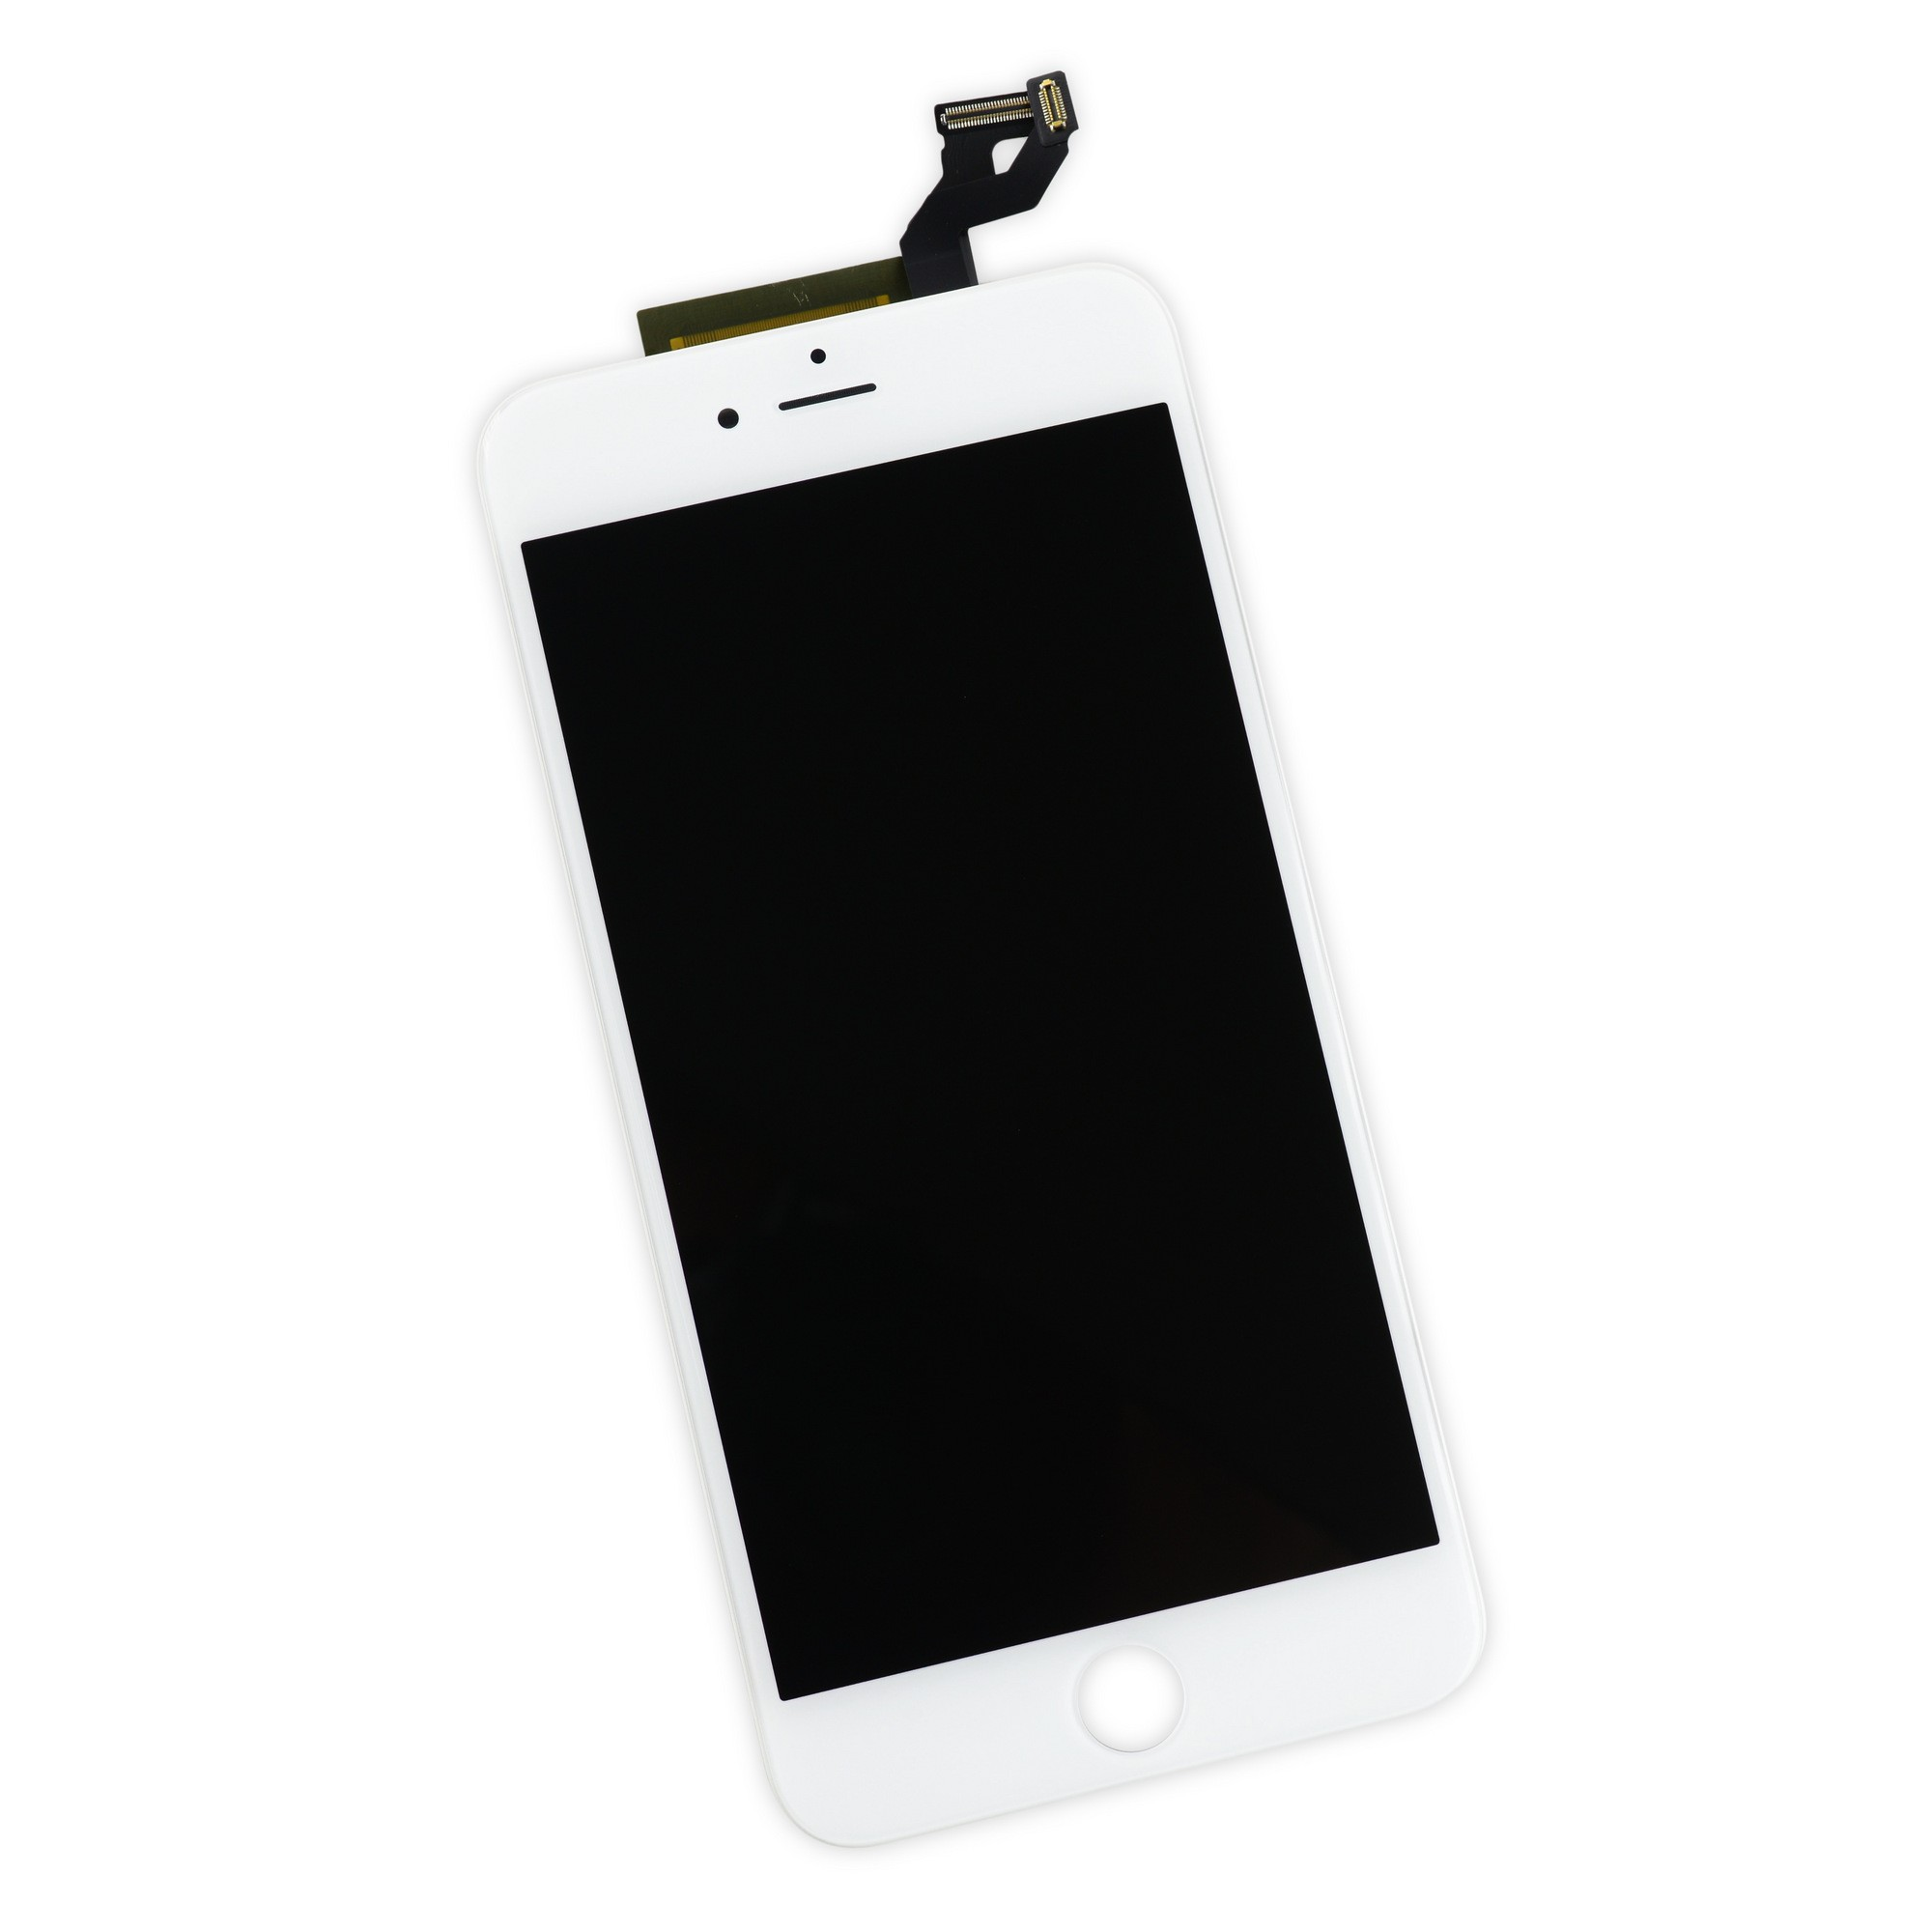 iFixit iPhone 6S Plus LCD Screen and Digitizer - White - Full Repair Kit Including Tools, IF315-000-4